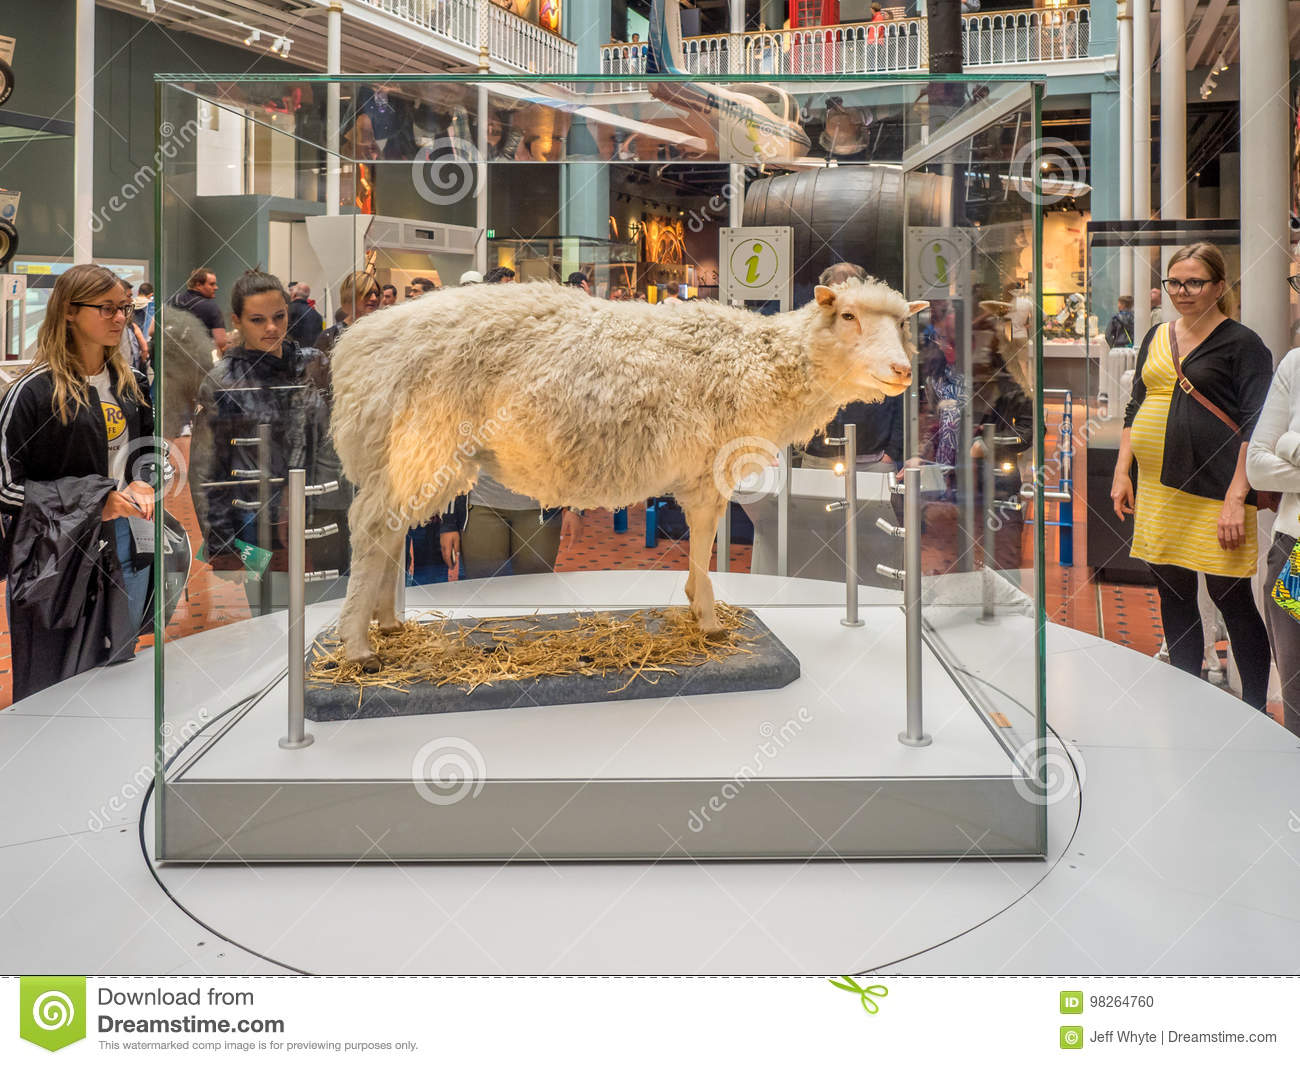 Dolly, National Museum of Scotland in Edinburgh